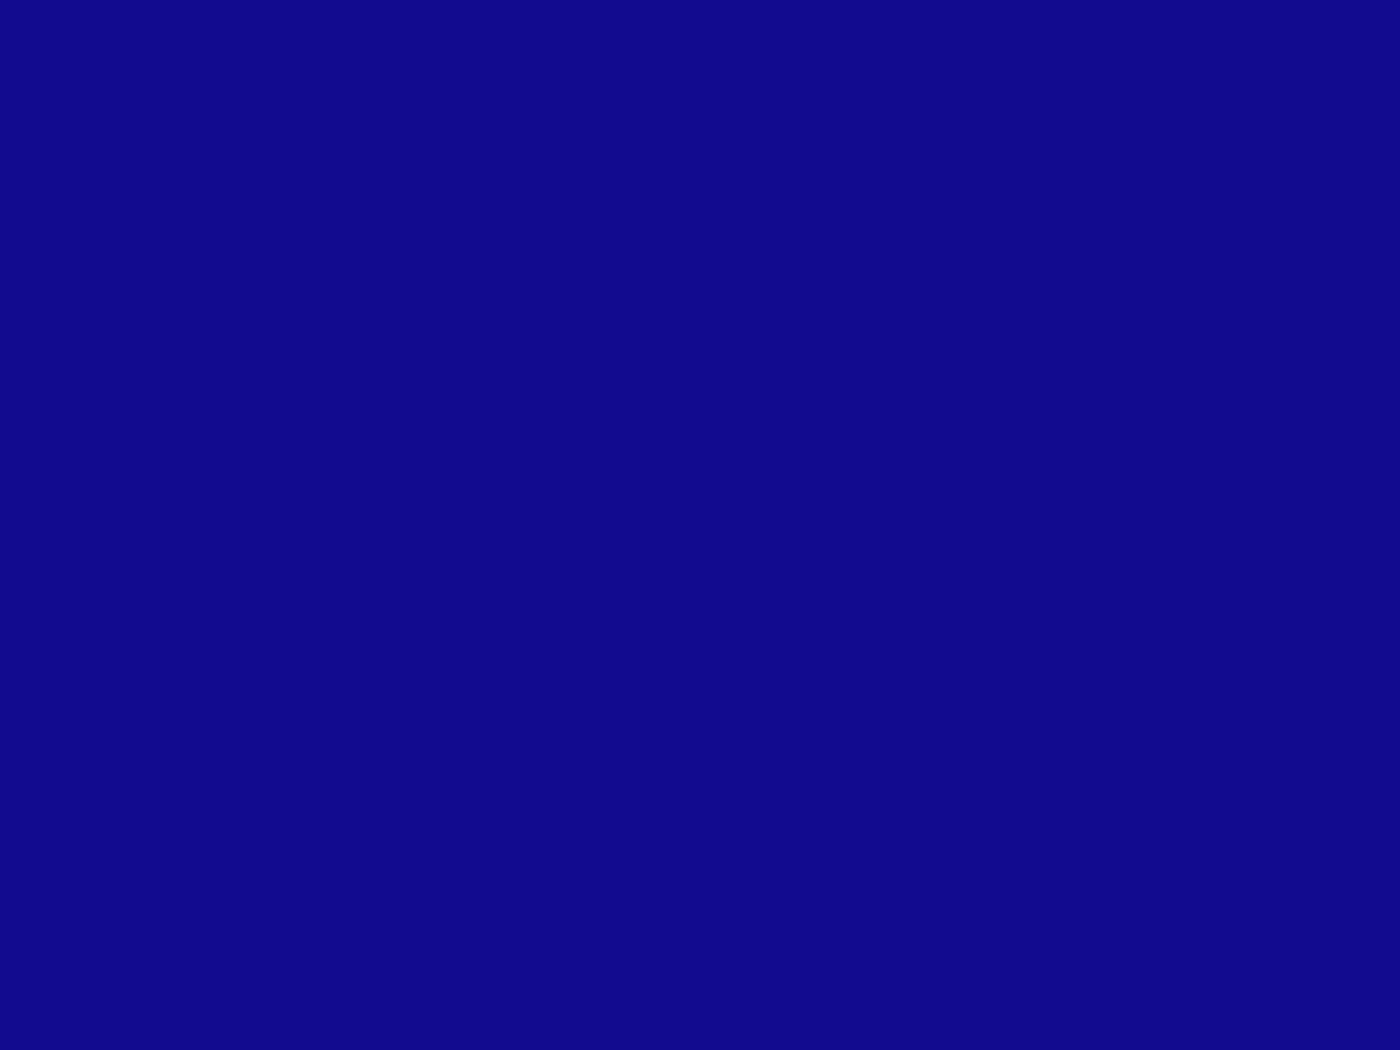 1400x1050 Ultramarine Solid Color Background 1400x1050